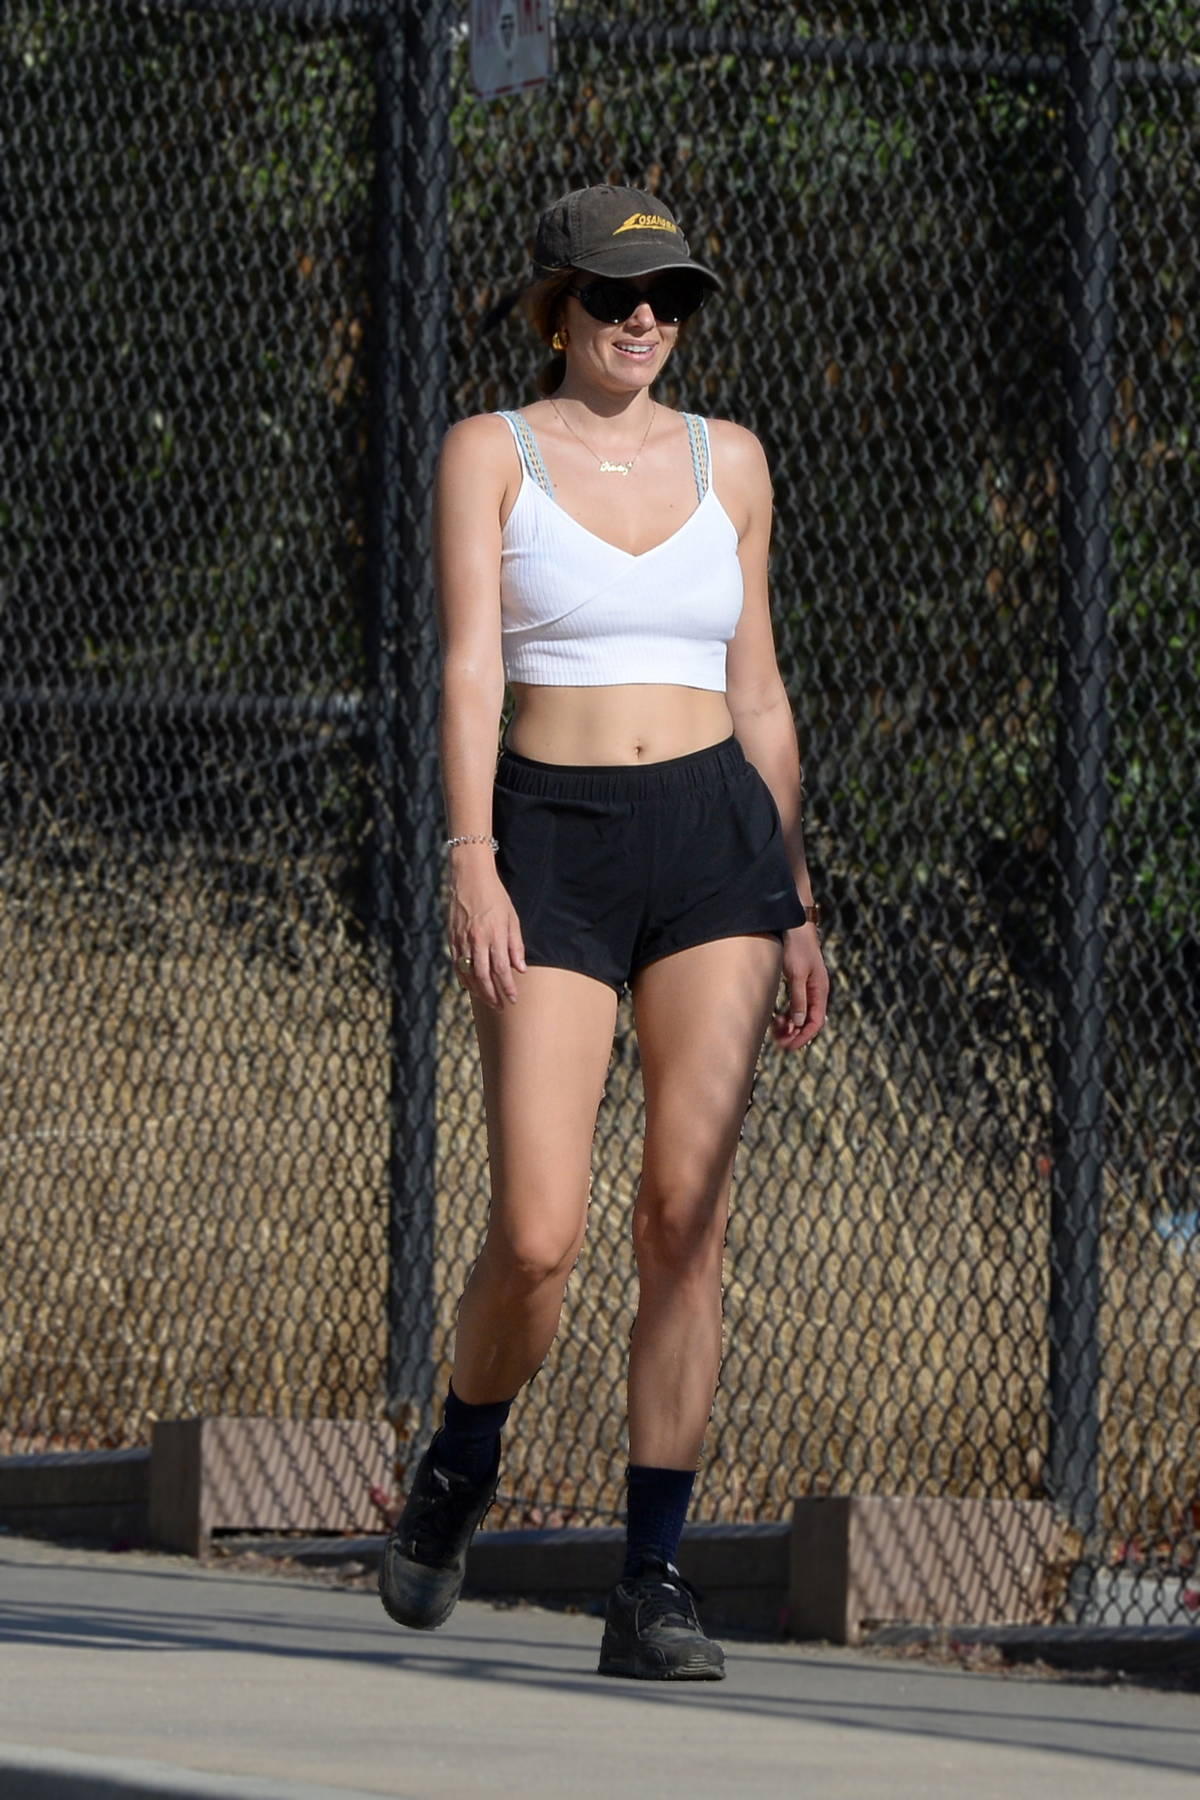 Keeley Hazell shows off her stunning figure in a crop top and shorts while out for a hike in Los Angeles